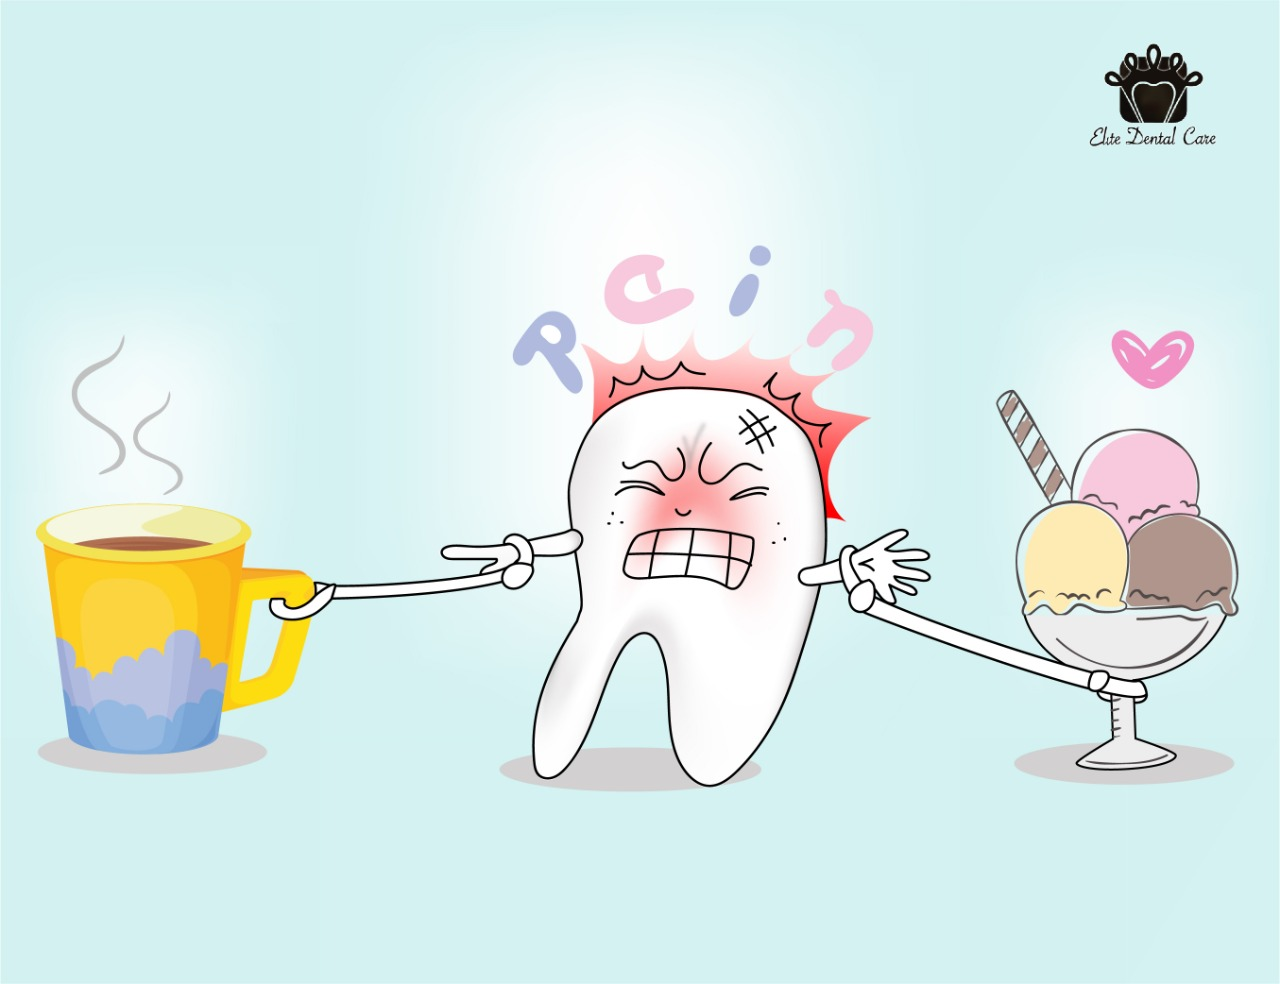 Best Treatment for Sensitive Teeth